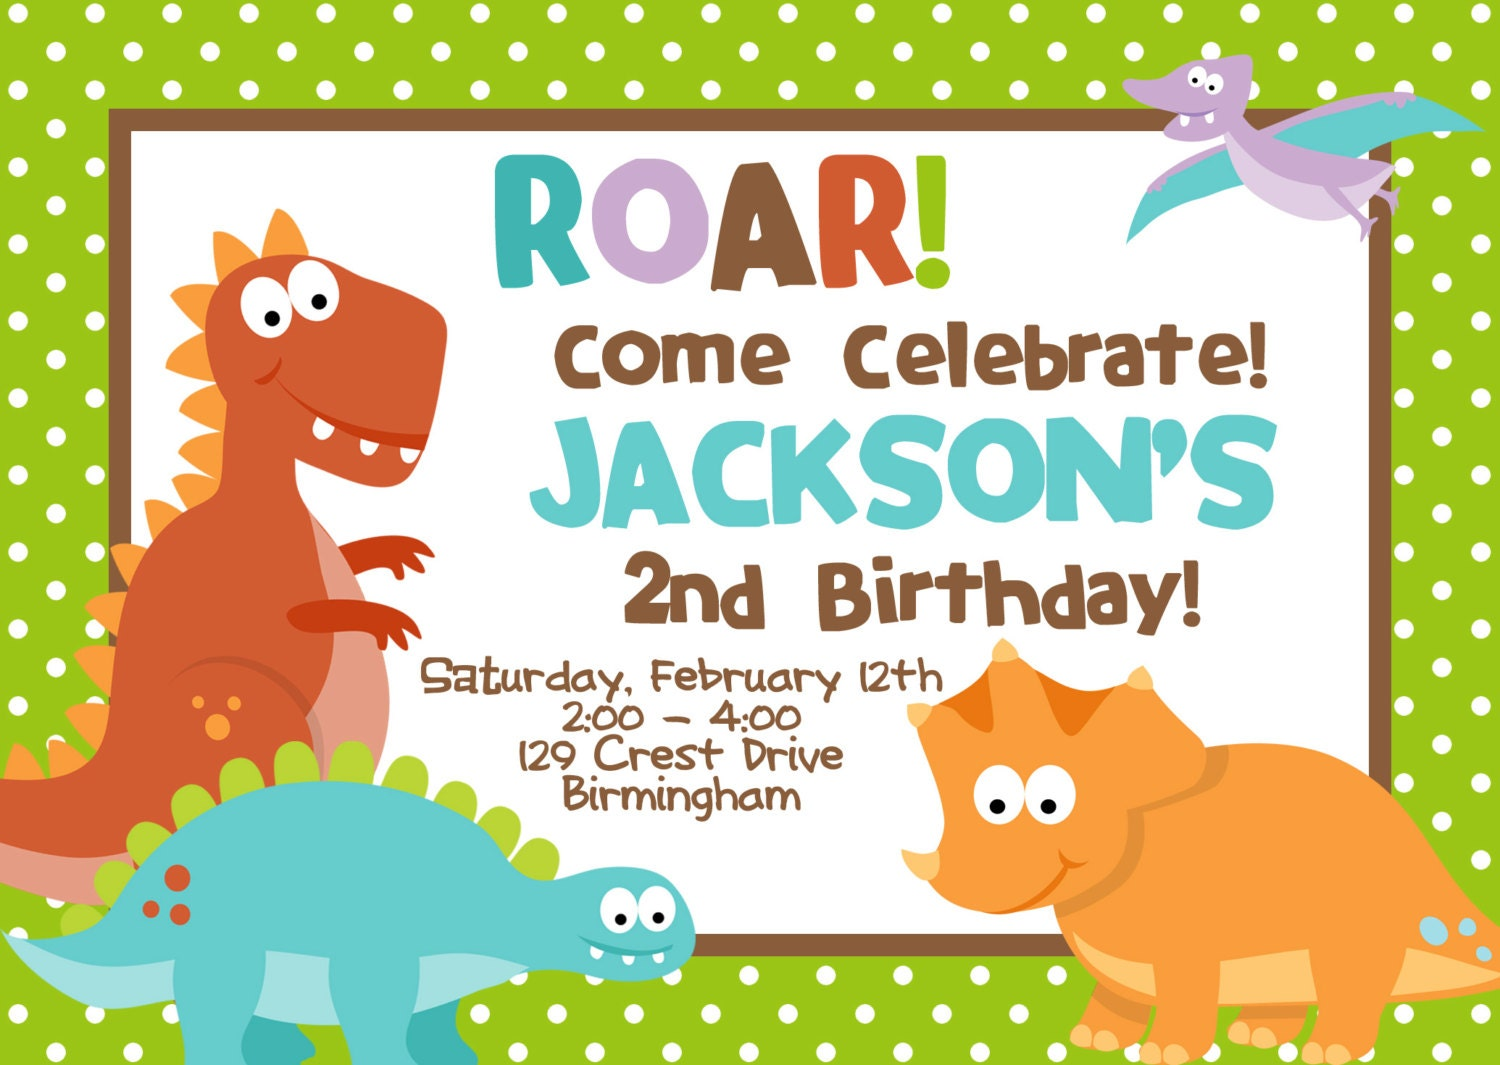 Dinosaur Invitation Template as nice invitation design